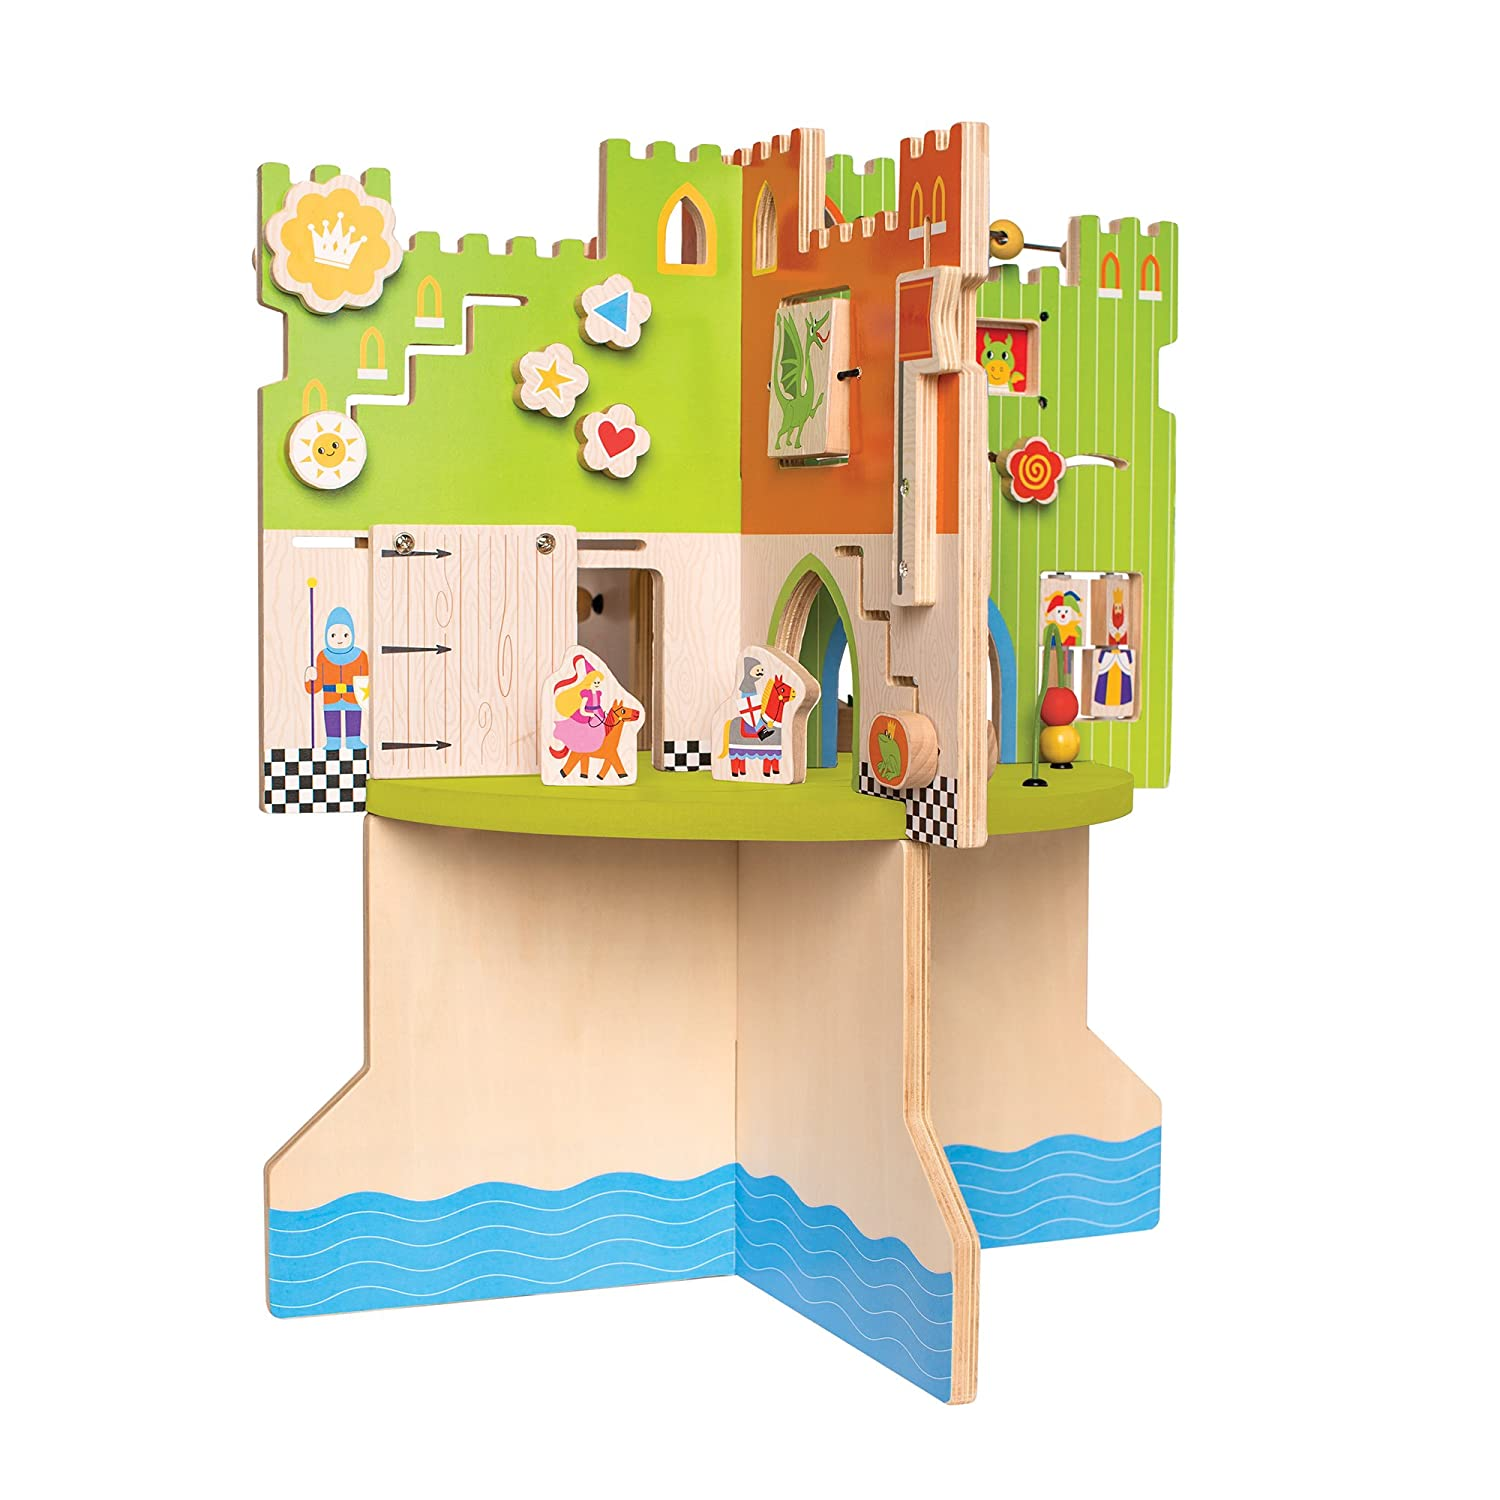 amazoncom manhattan toy storybook castle wooden toddler activity center toys games